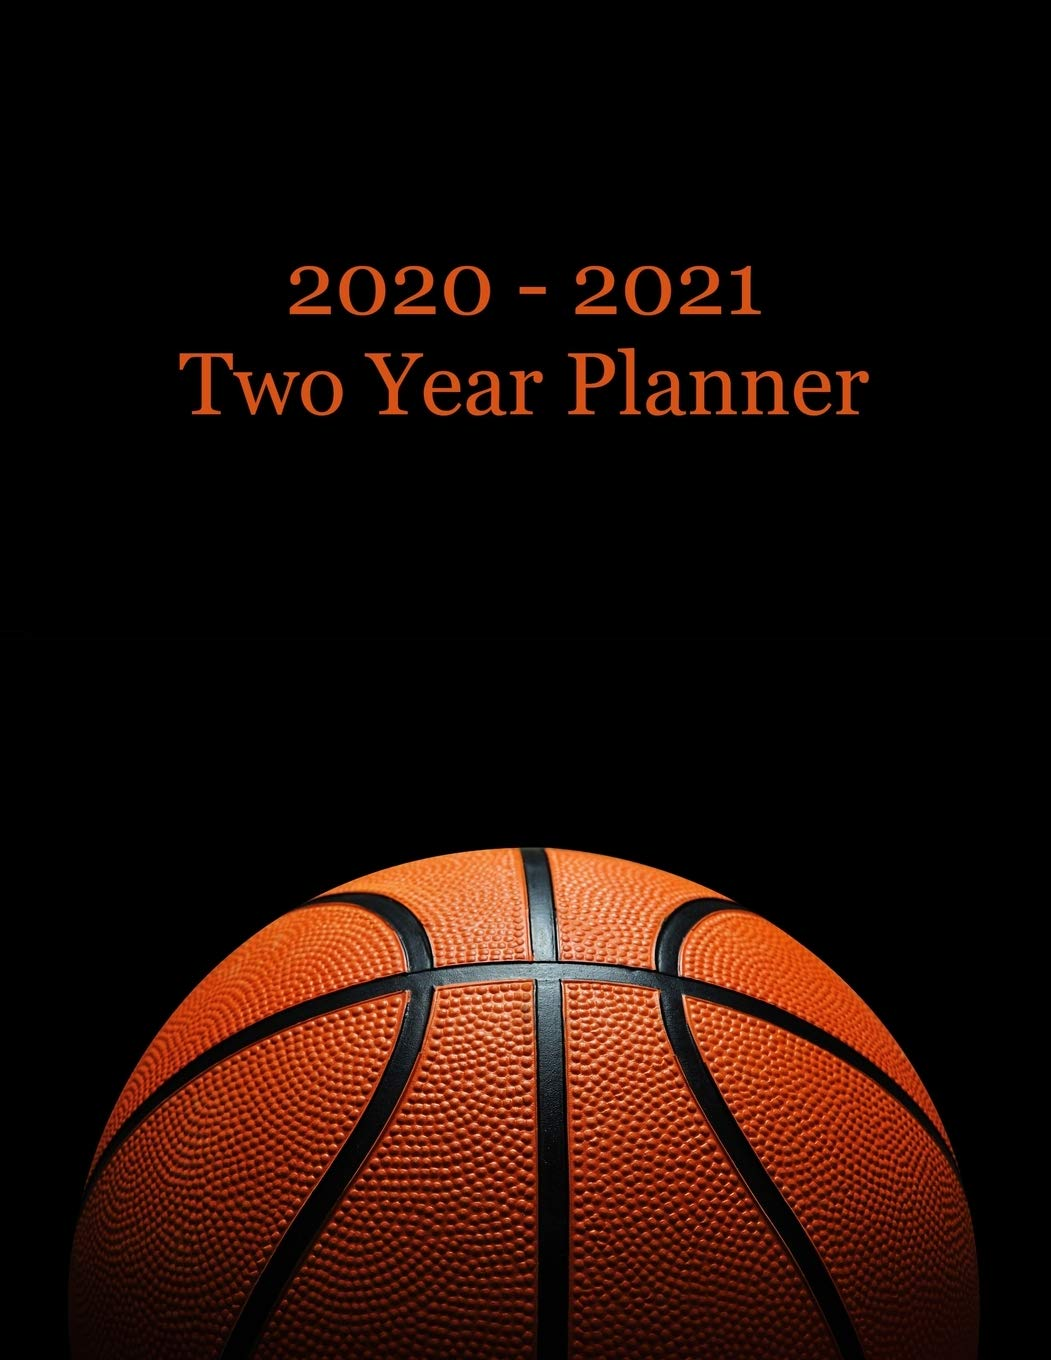 2020 – 2021 Two Year Planner: Basketball Cover – Includes Major